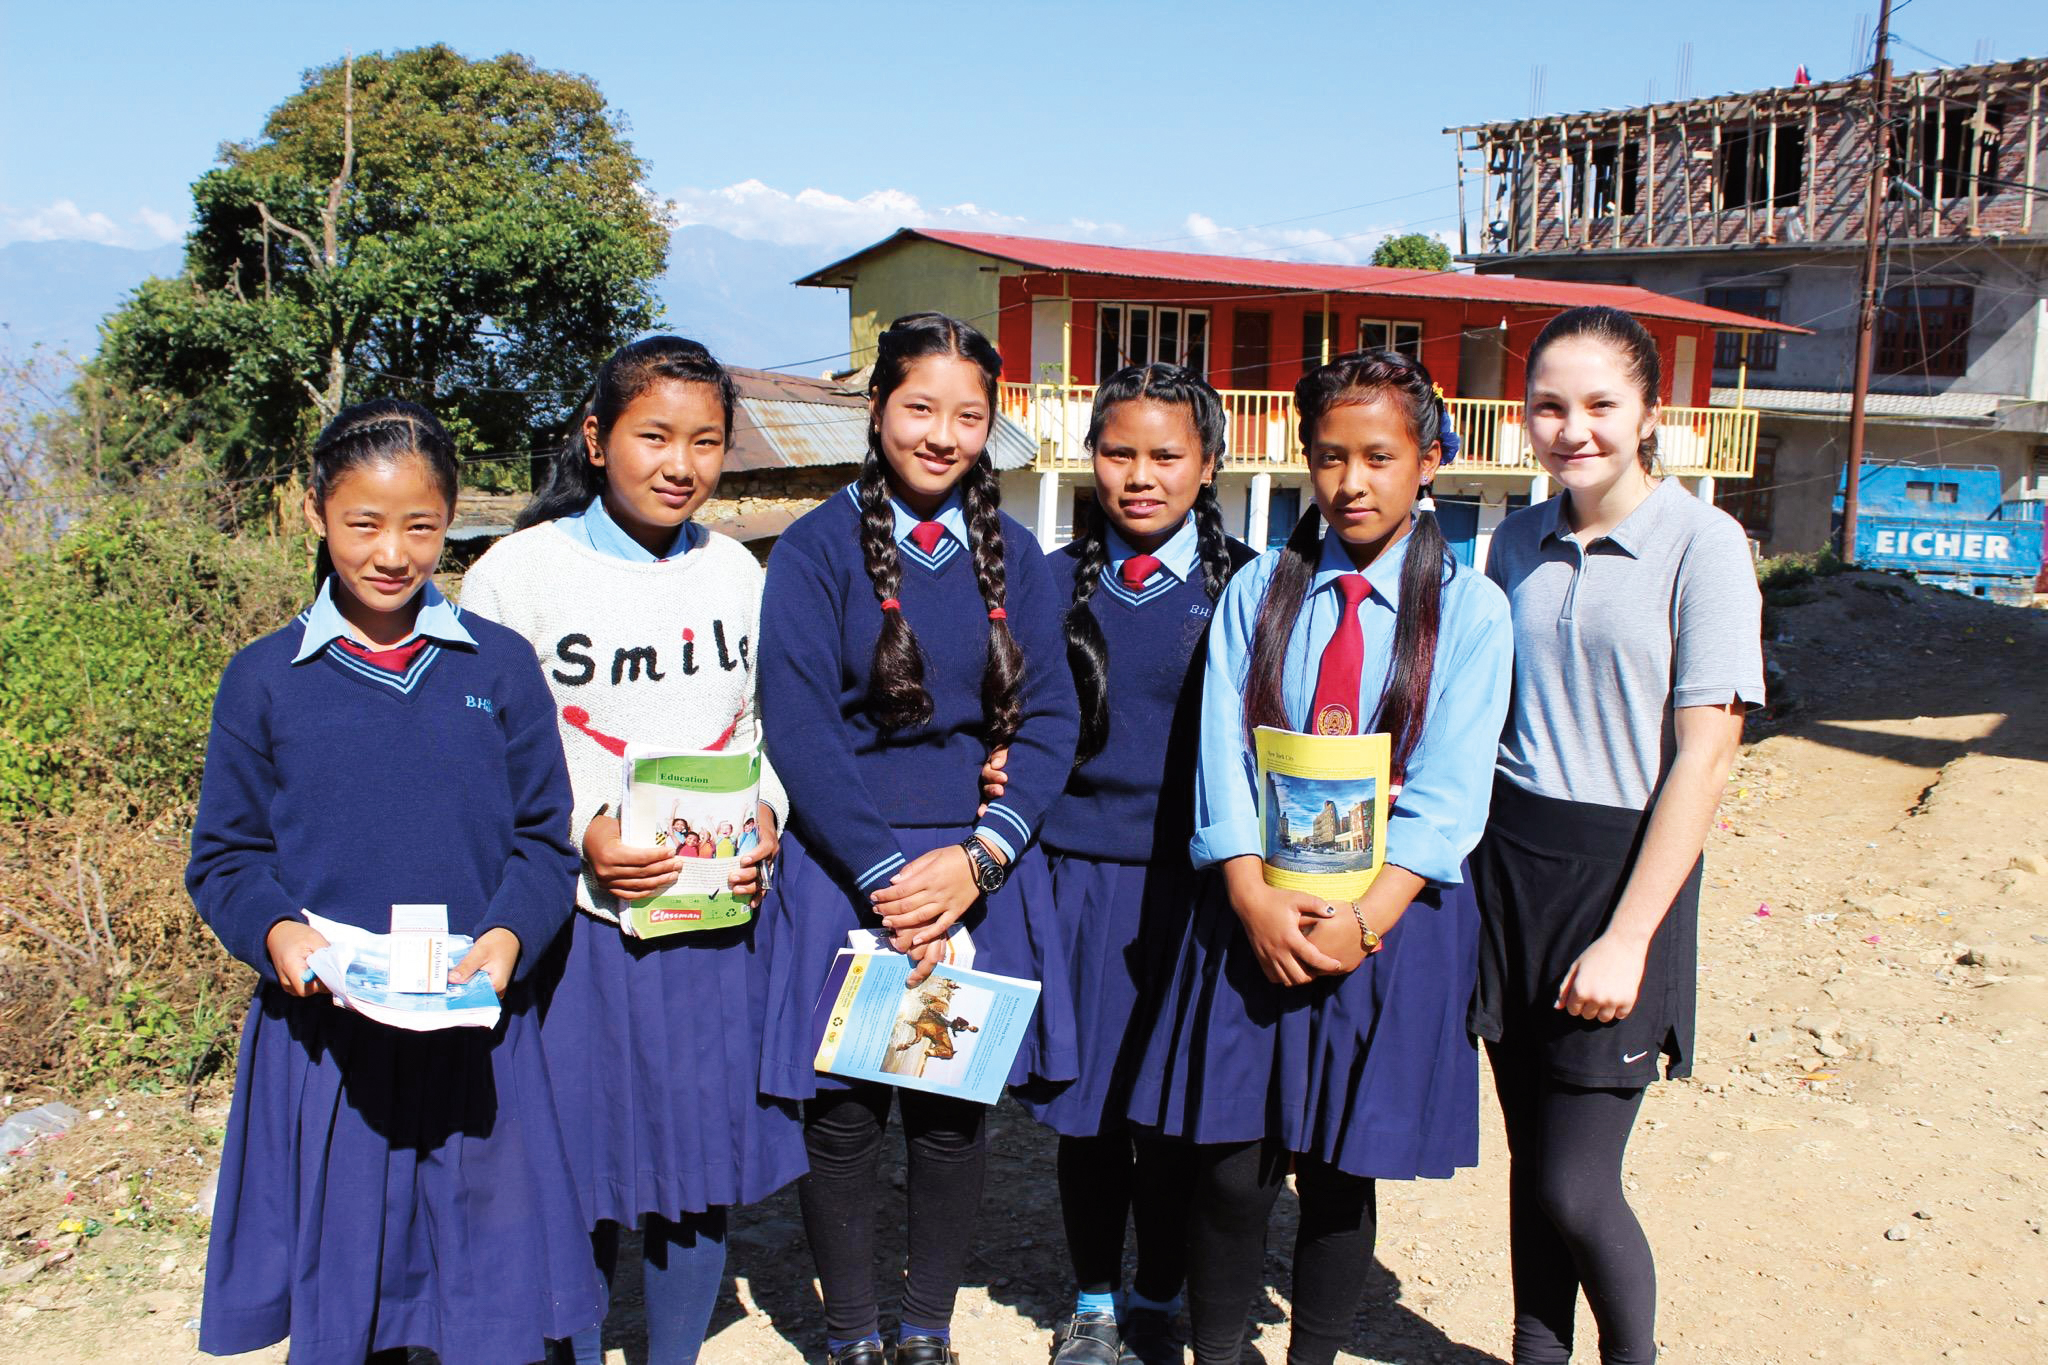 Haydn Shaw (far right, pictured with students in Nepal), daughter of Jared Shaw '92, joined her mother, Melissa, and Trevor Patzer '92 on a trip to Nepal to visit the students of the Little Sister's Fund.